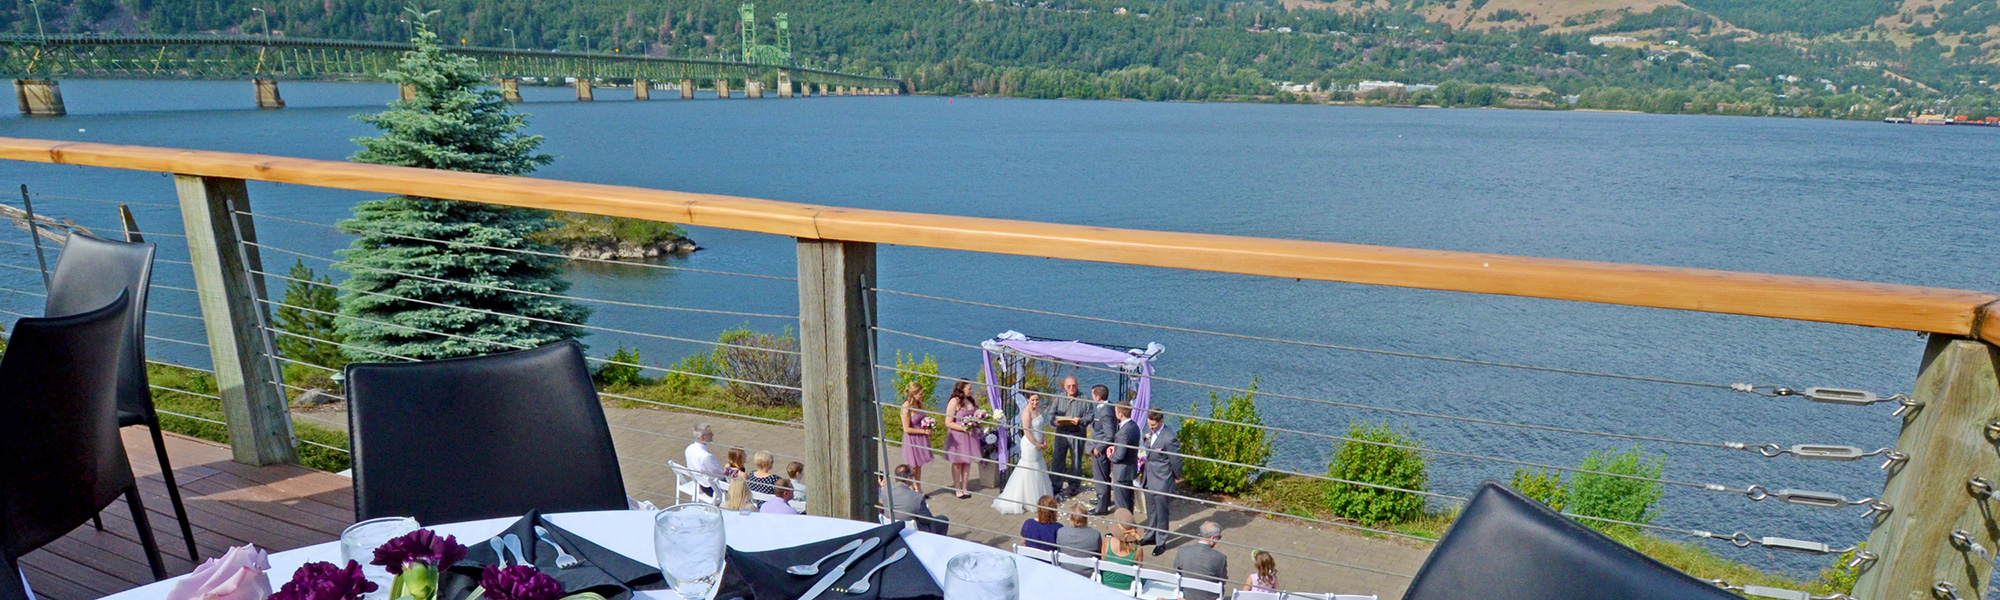 patio wedding from shoreline deck